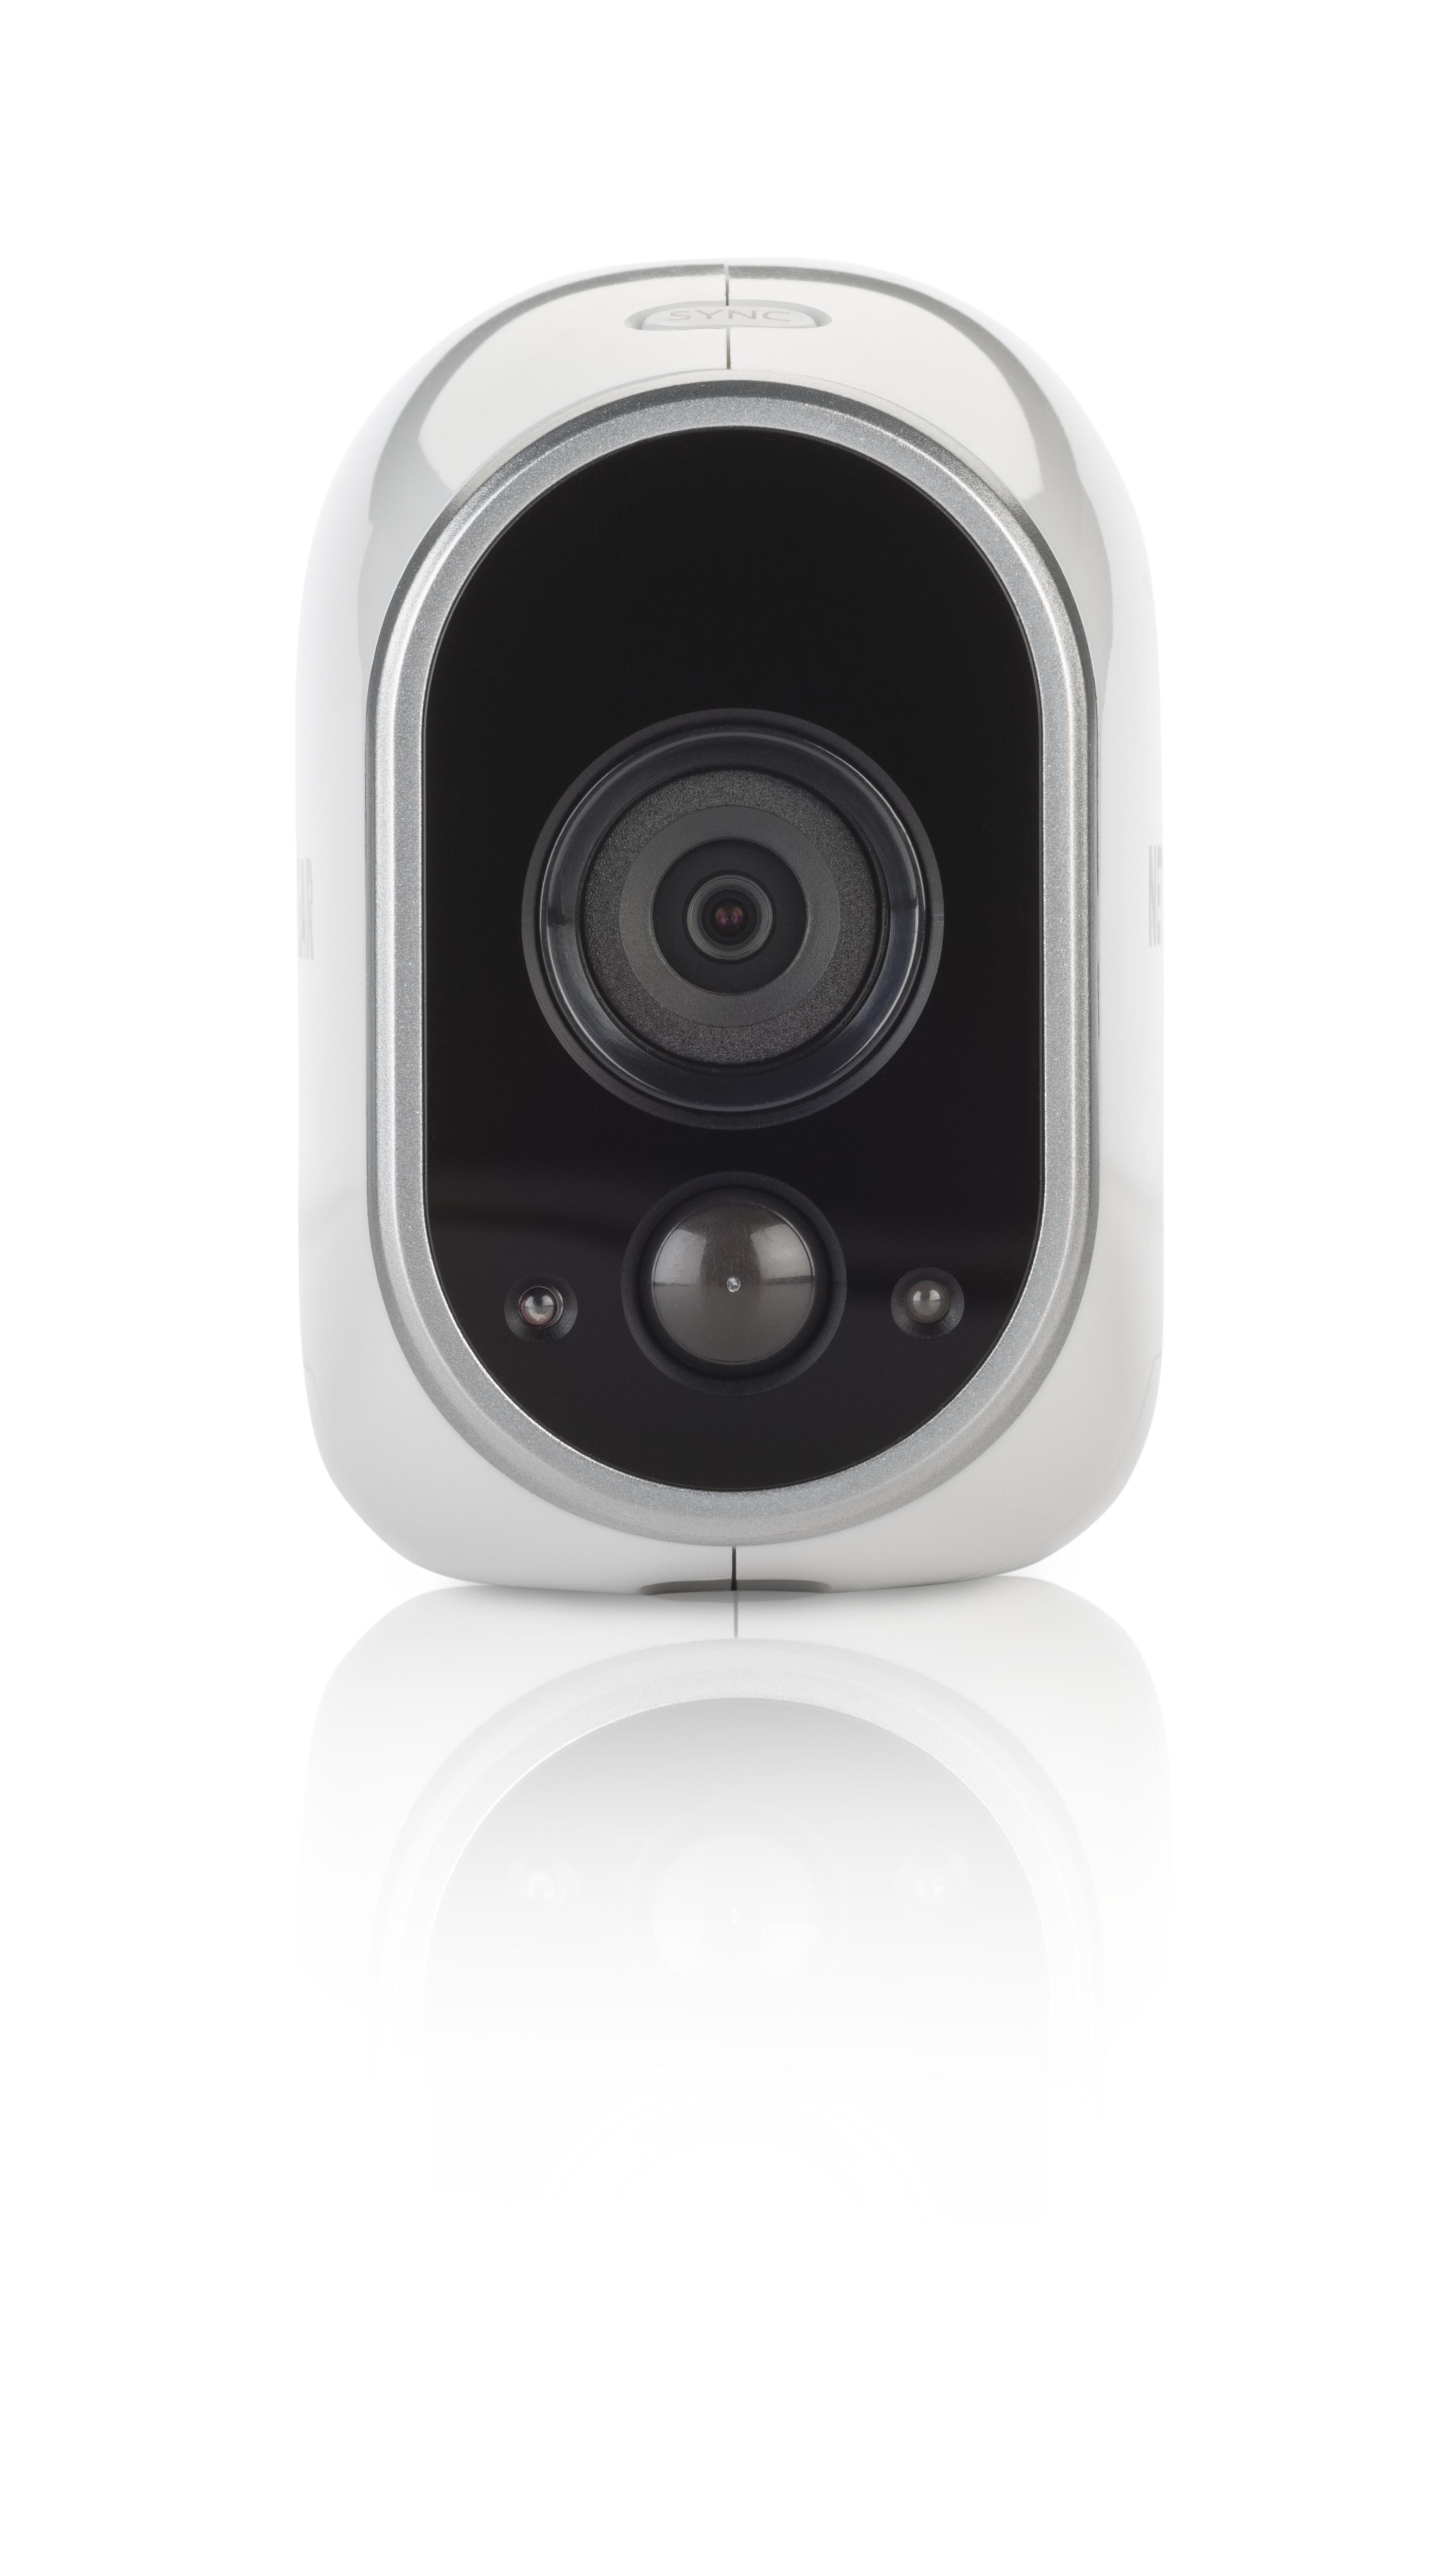 Camera Ip Exterieur Grosbill Full Hd Kit Camra Ip Intelligente Intrieur 1920x1080 Blanc Camera